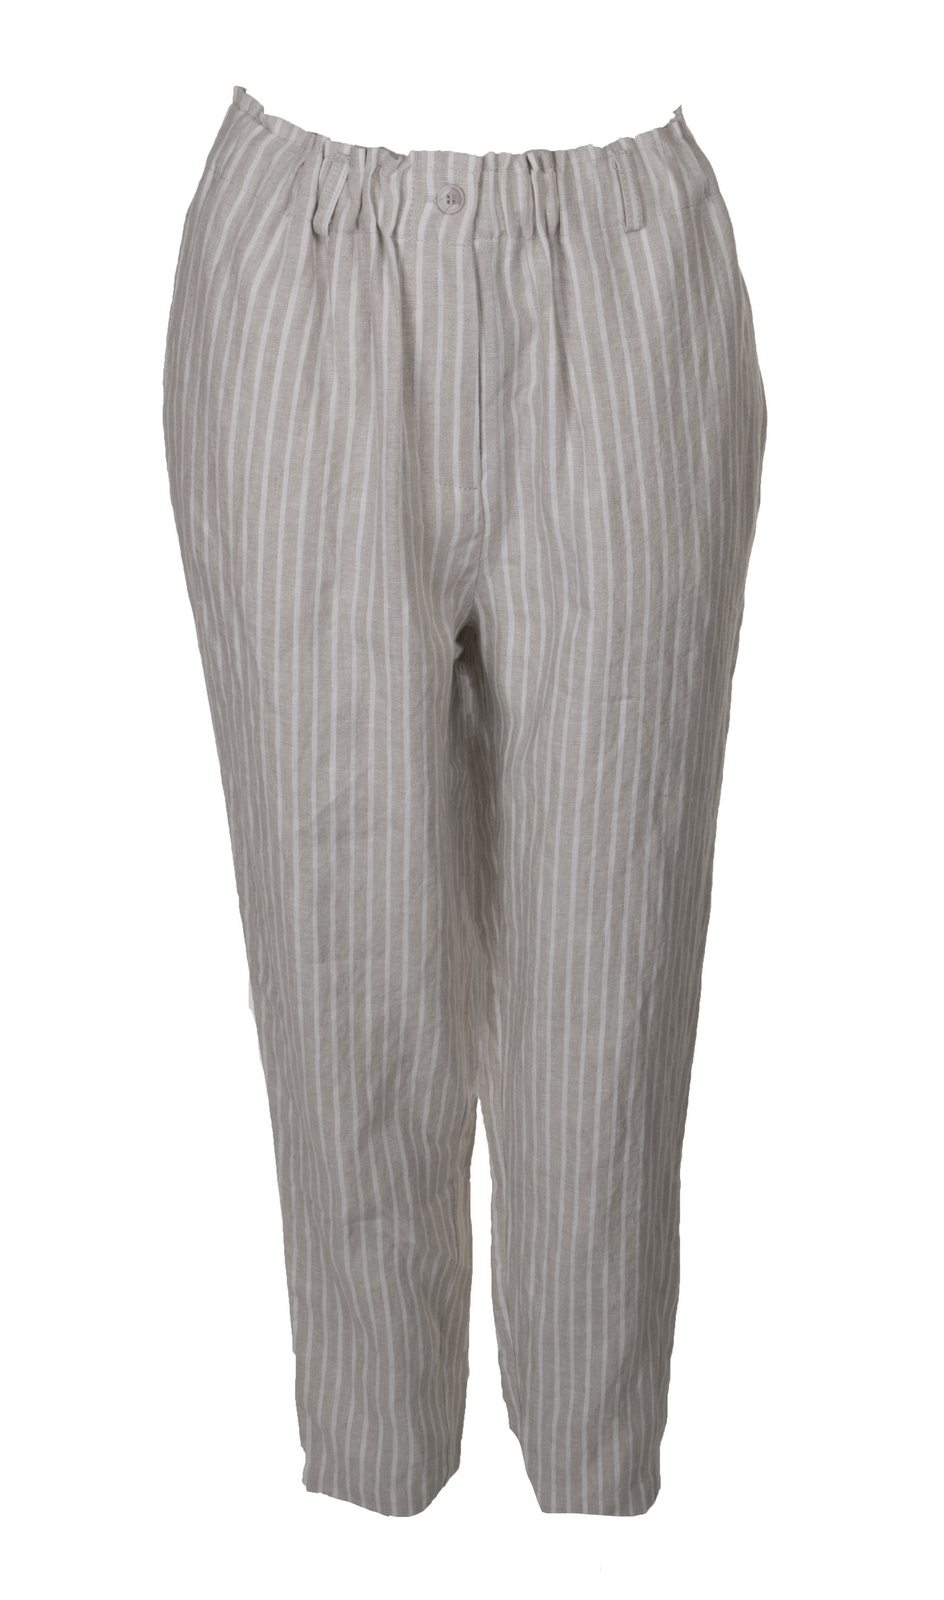 f108739fa922 Pamela Trousers Beige. Exquisite linen beige and white striped Pamela  trousers from Masai.